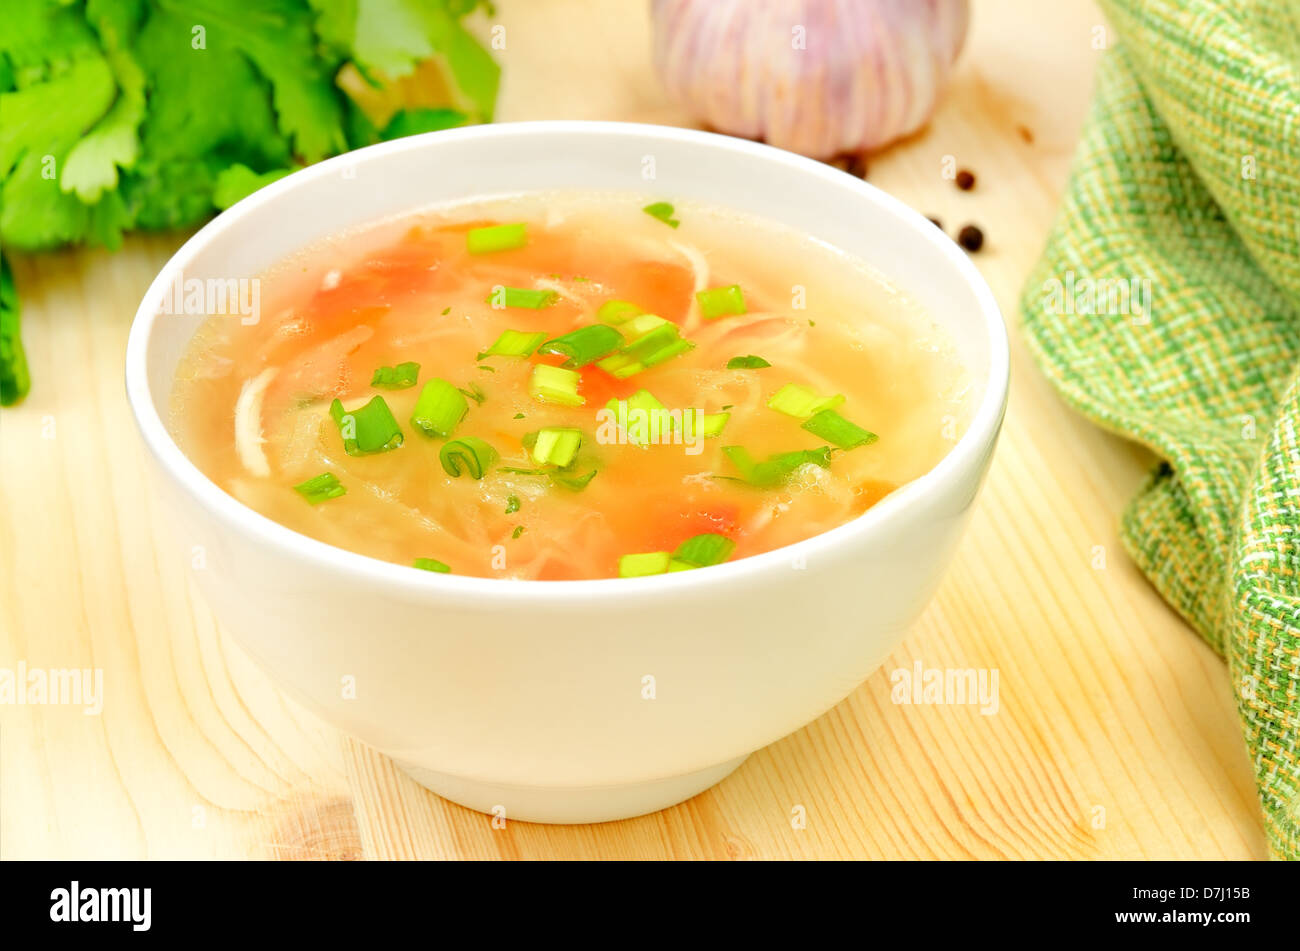 Sauerkraut soup in white bowl on wooden table - Stock Image